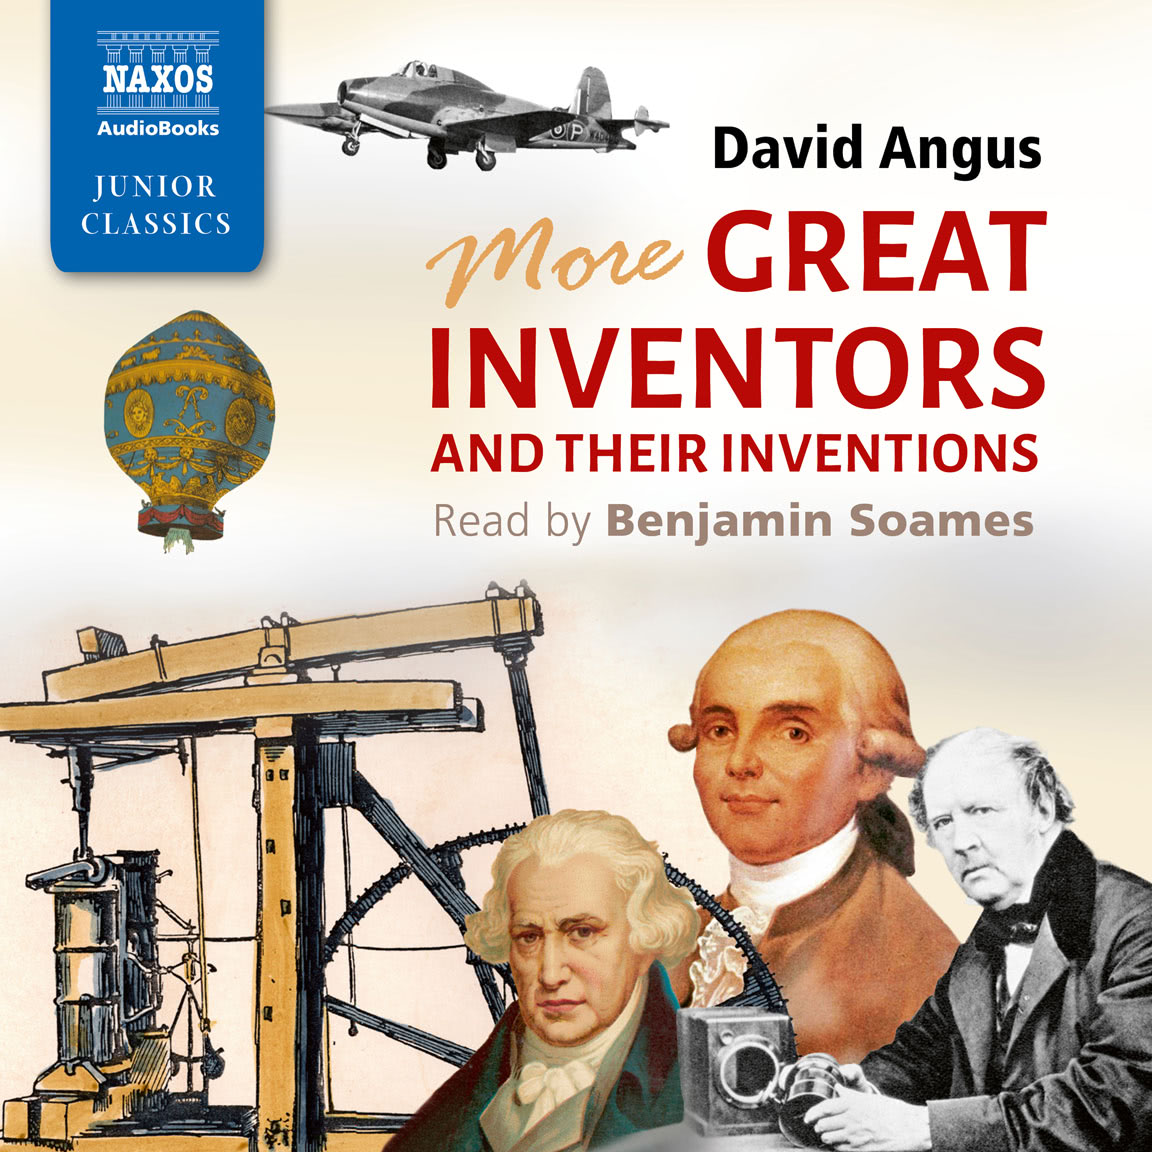 More Great Inventors (unabridged)